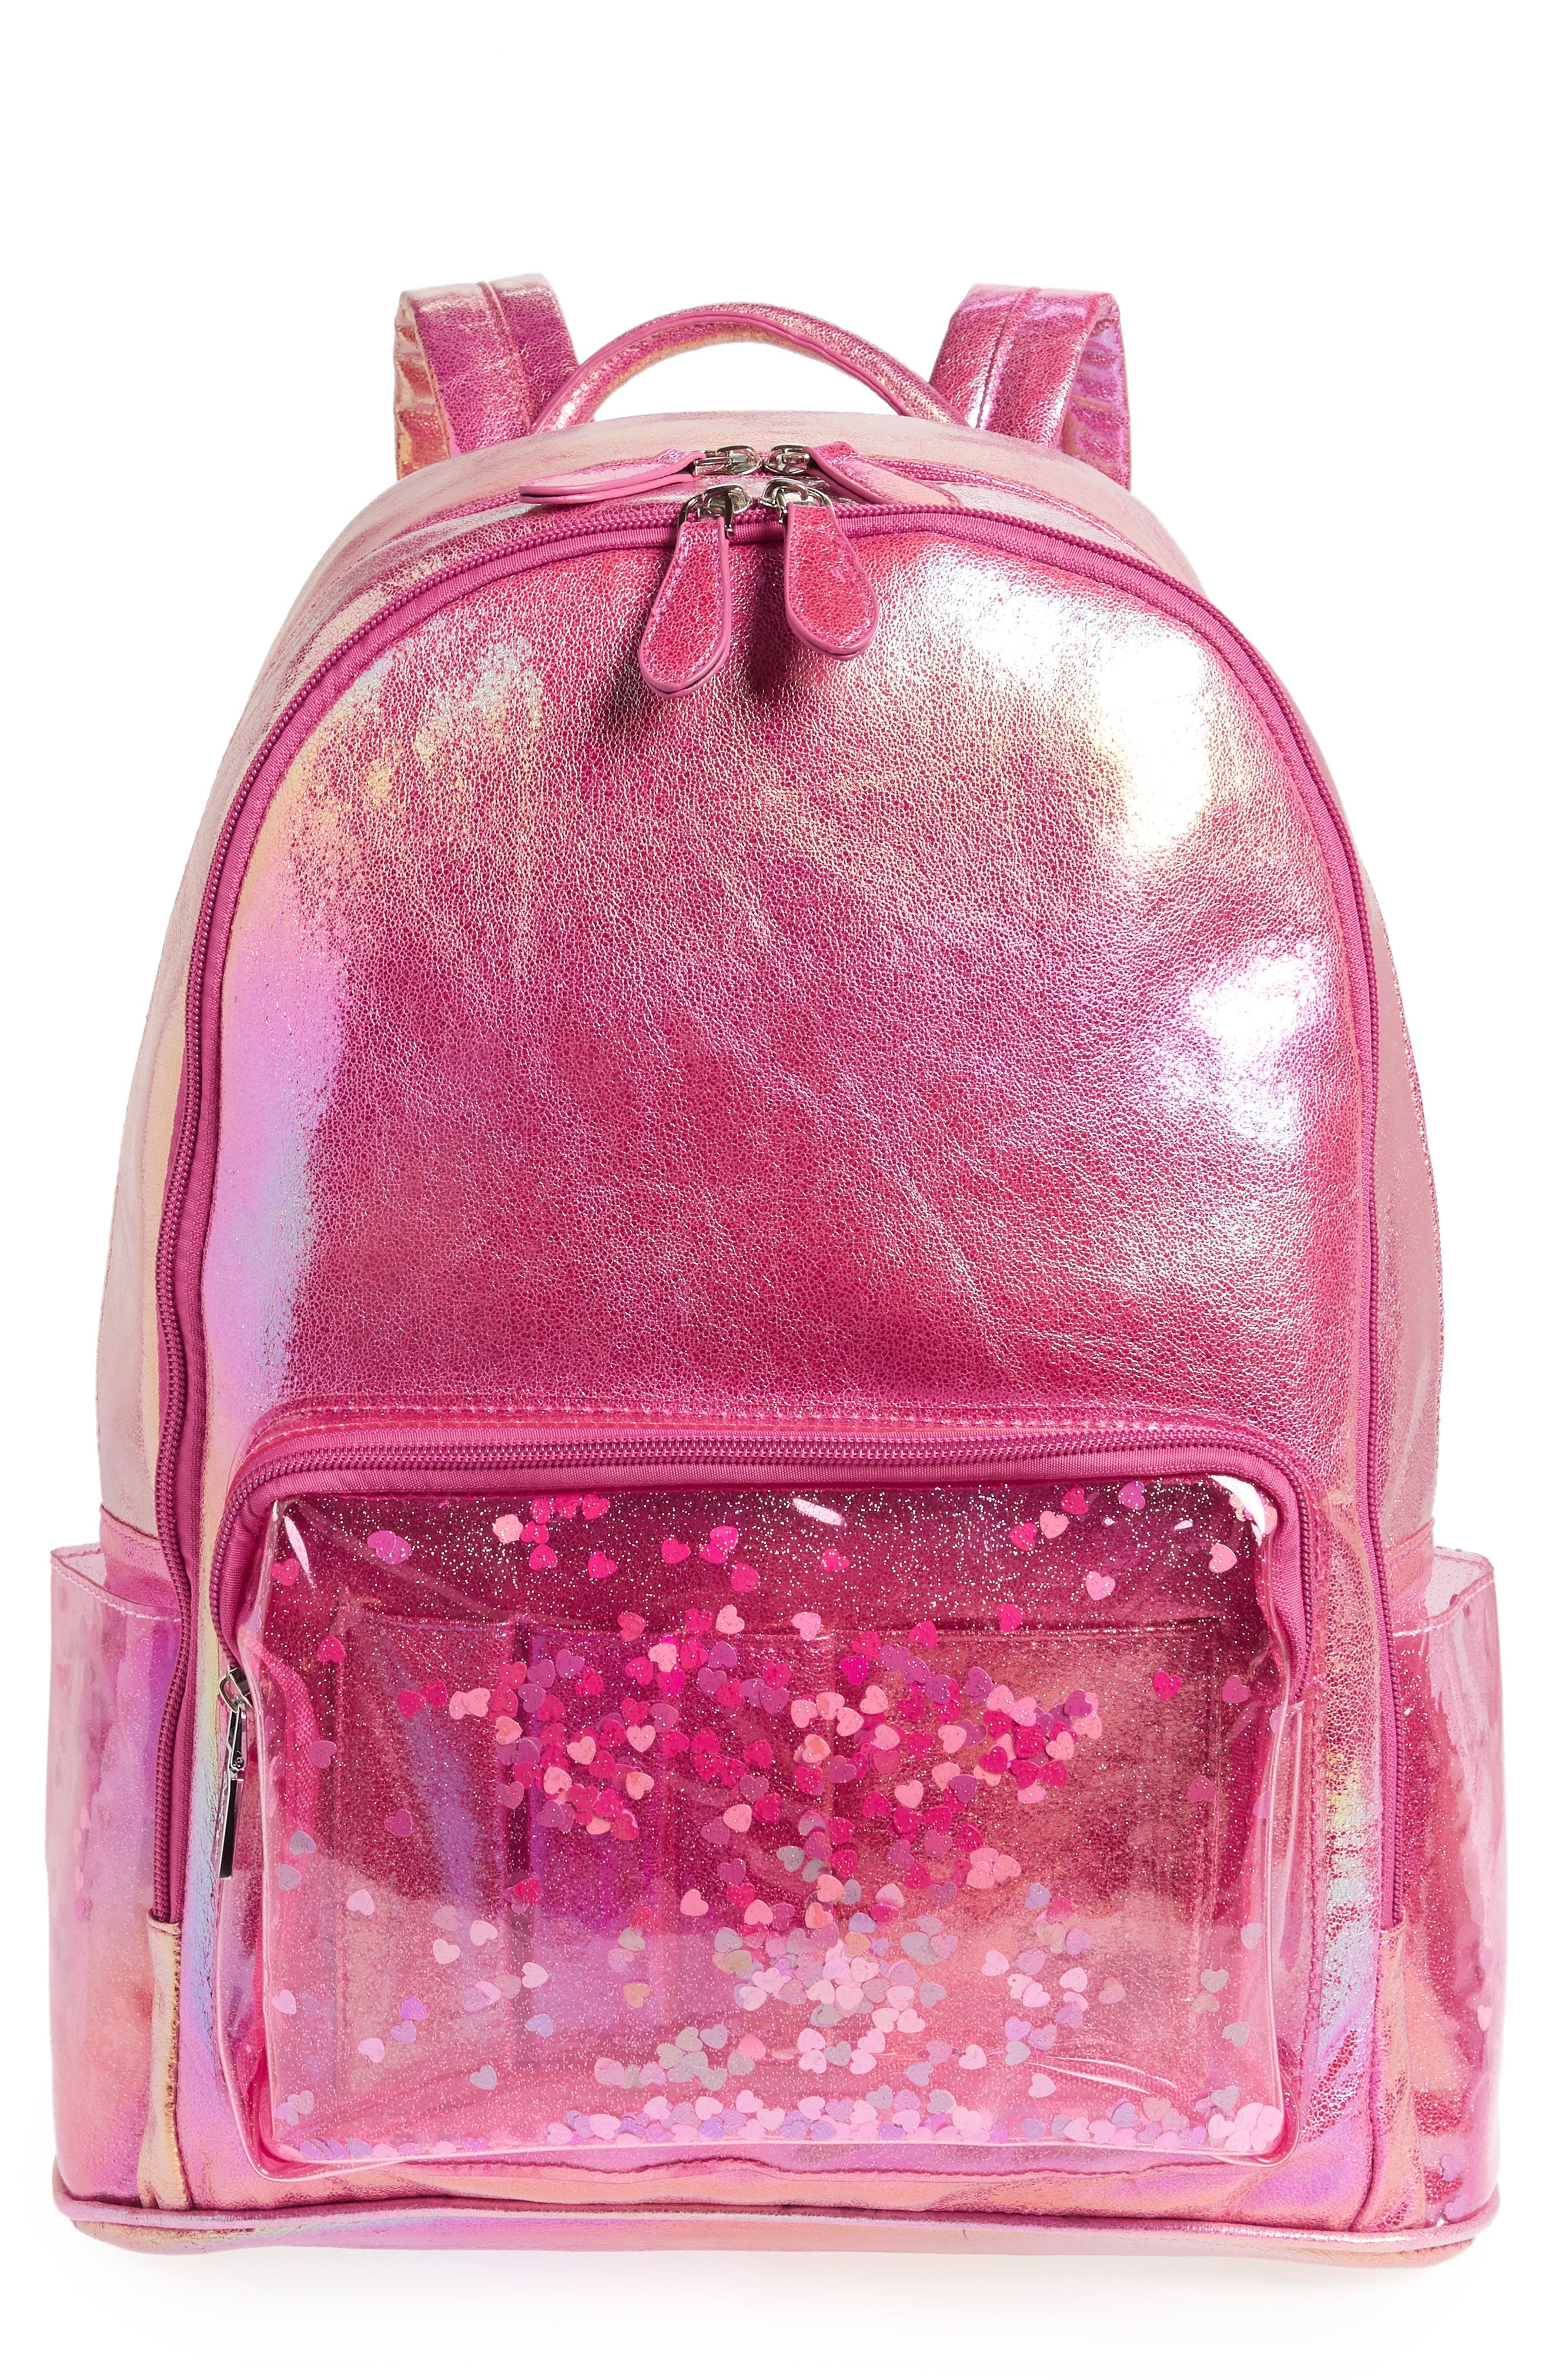 Heart Confetti Holographic Backpack,                             Main thumbnail 1, color,                             650